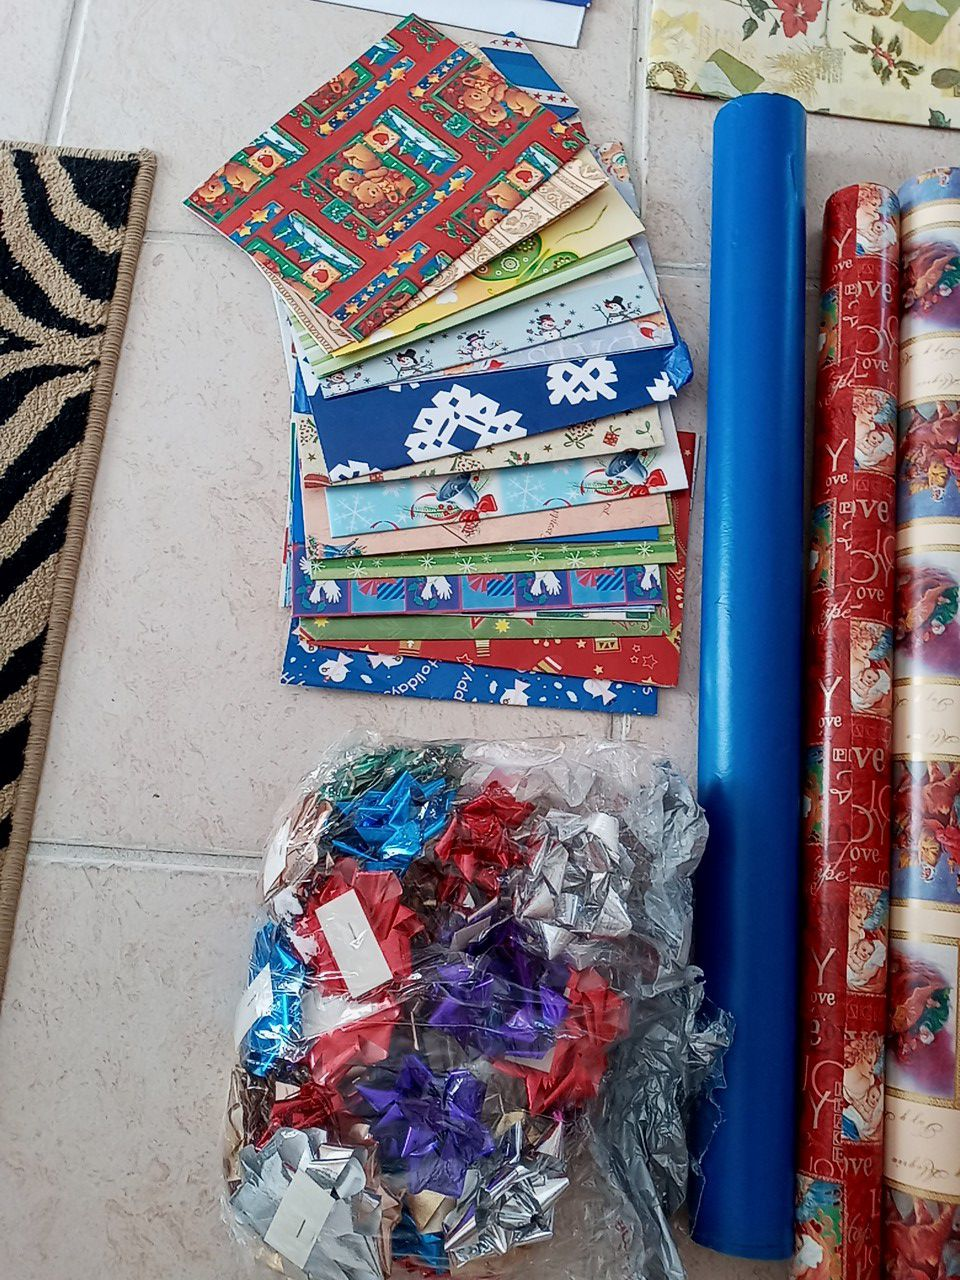 Christmas supplies - paper, stationary, boxes, bows